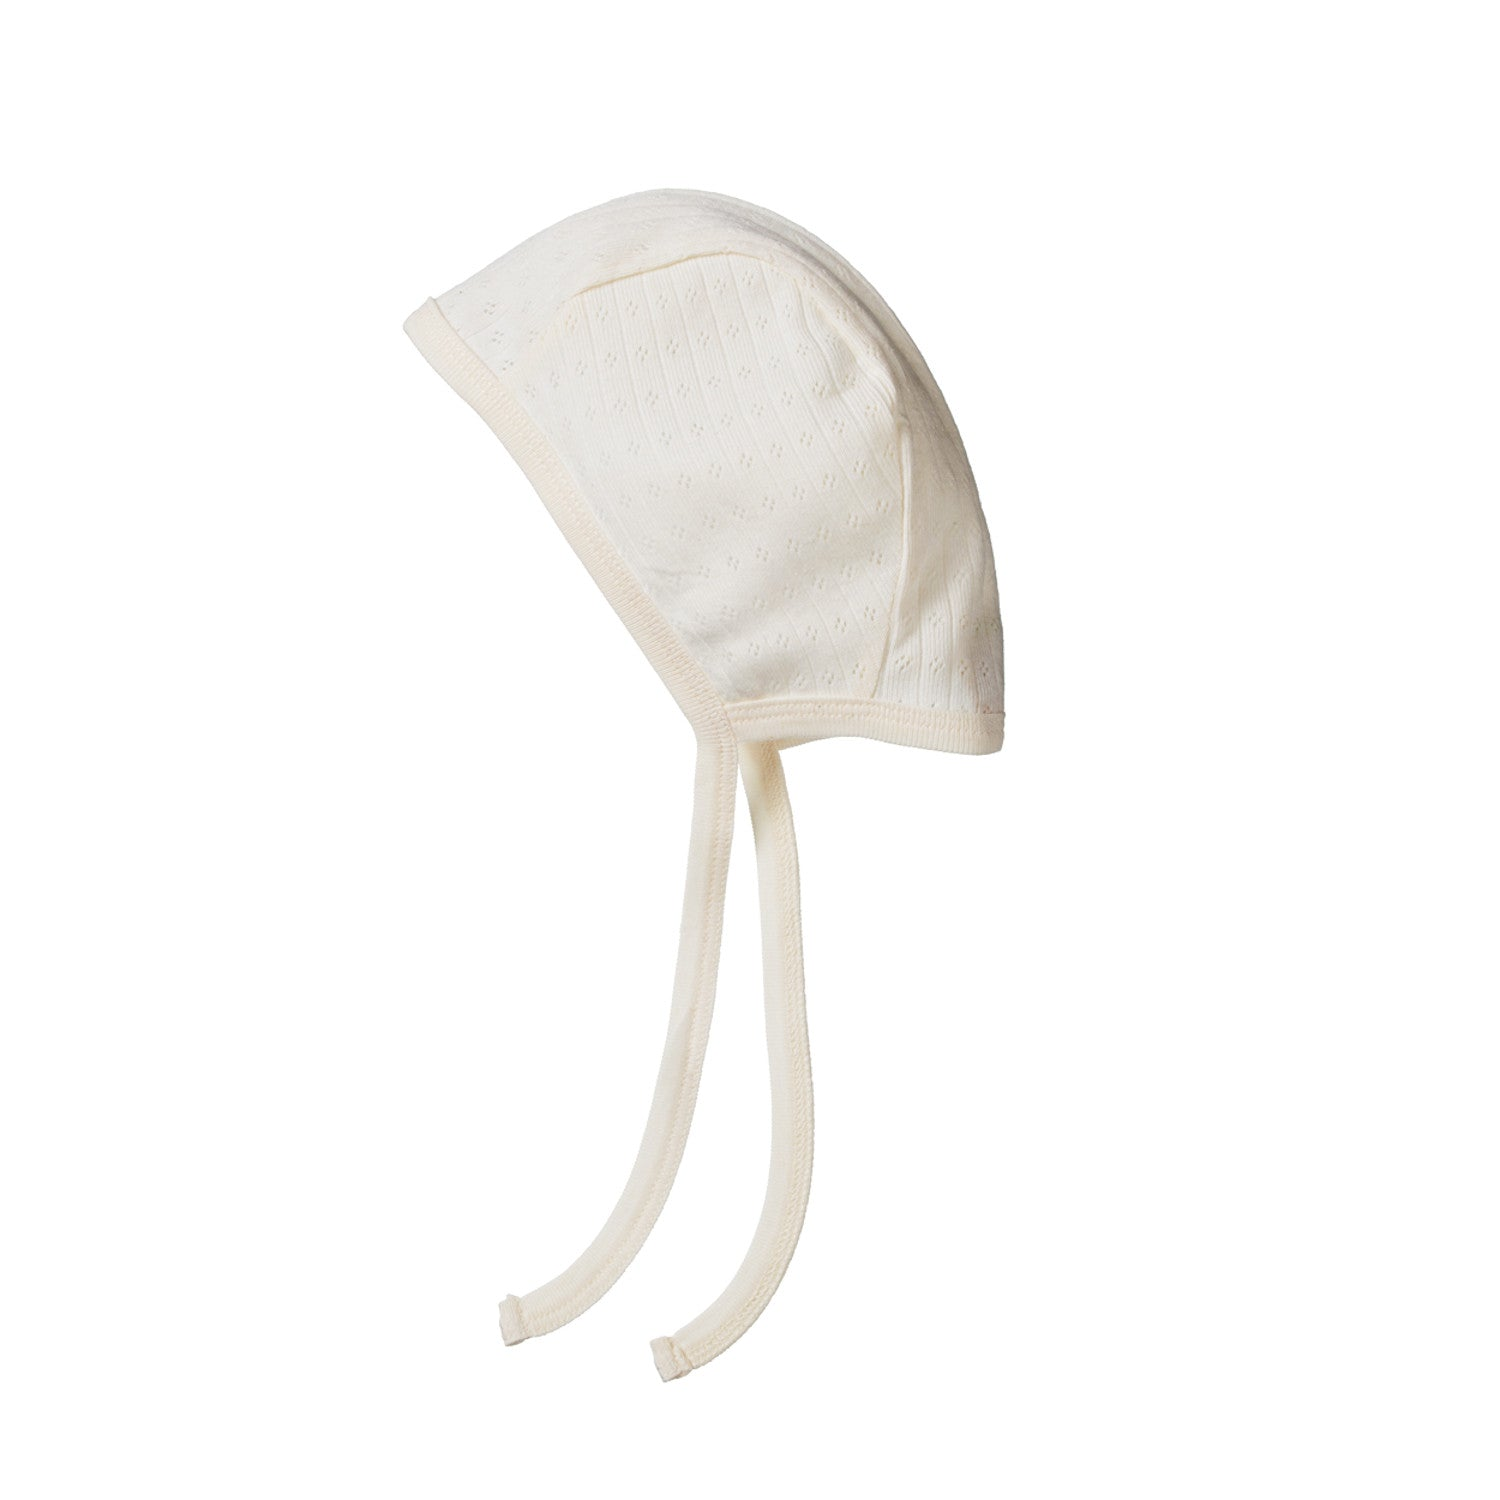 Nature Baby Pointelle Bonnet - Natural